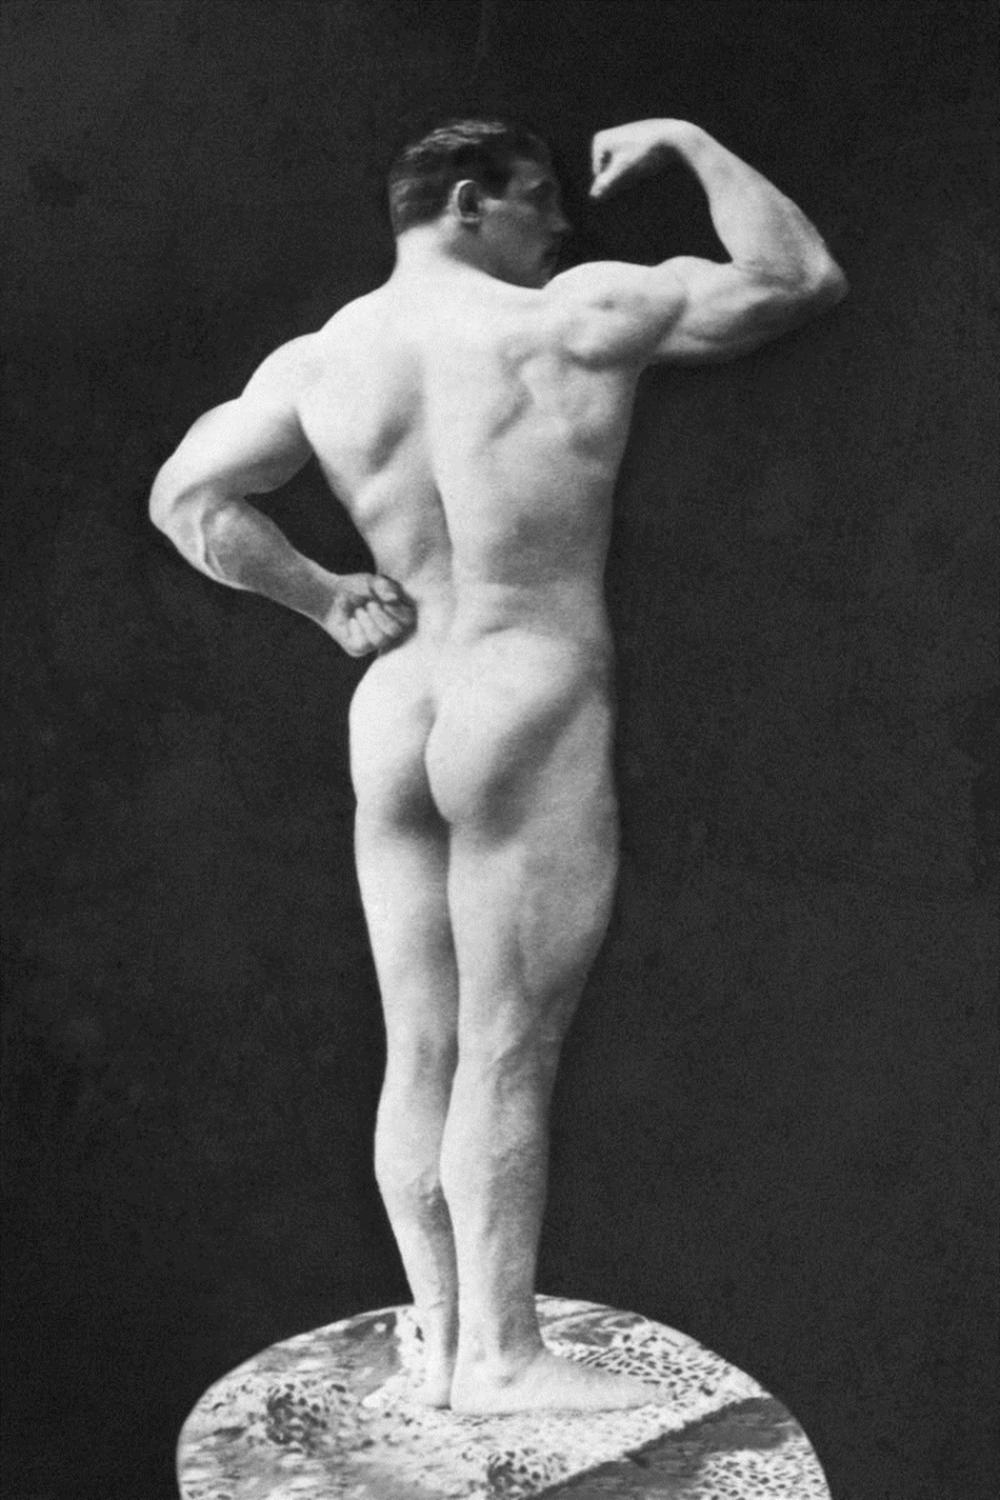 VINTAGE MUSCLE MEN STATUESQUE BACK AND ARM CURL